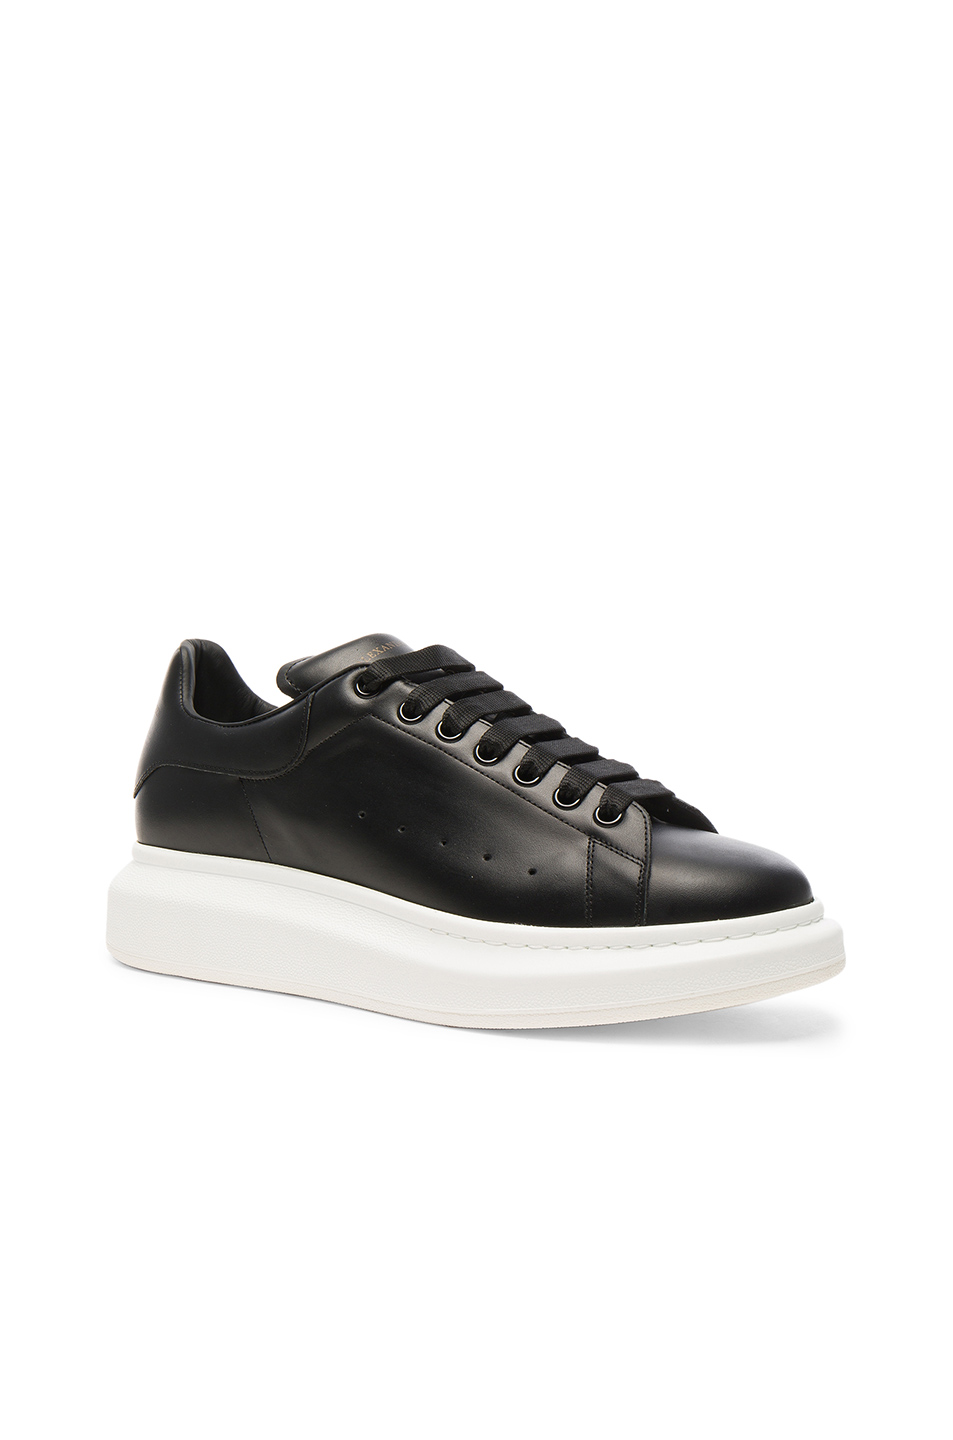 Photo of Alexander McQueen Leather Platform Sneakers in Black - shop Alexander McQueen menswear